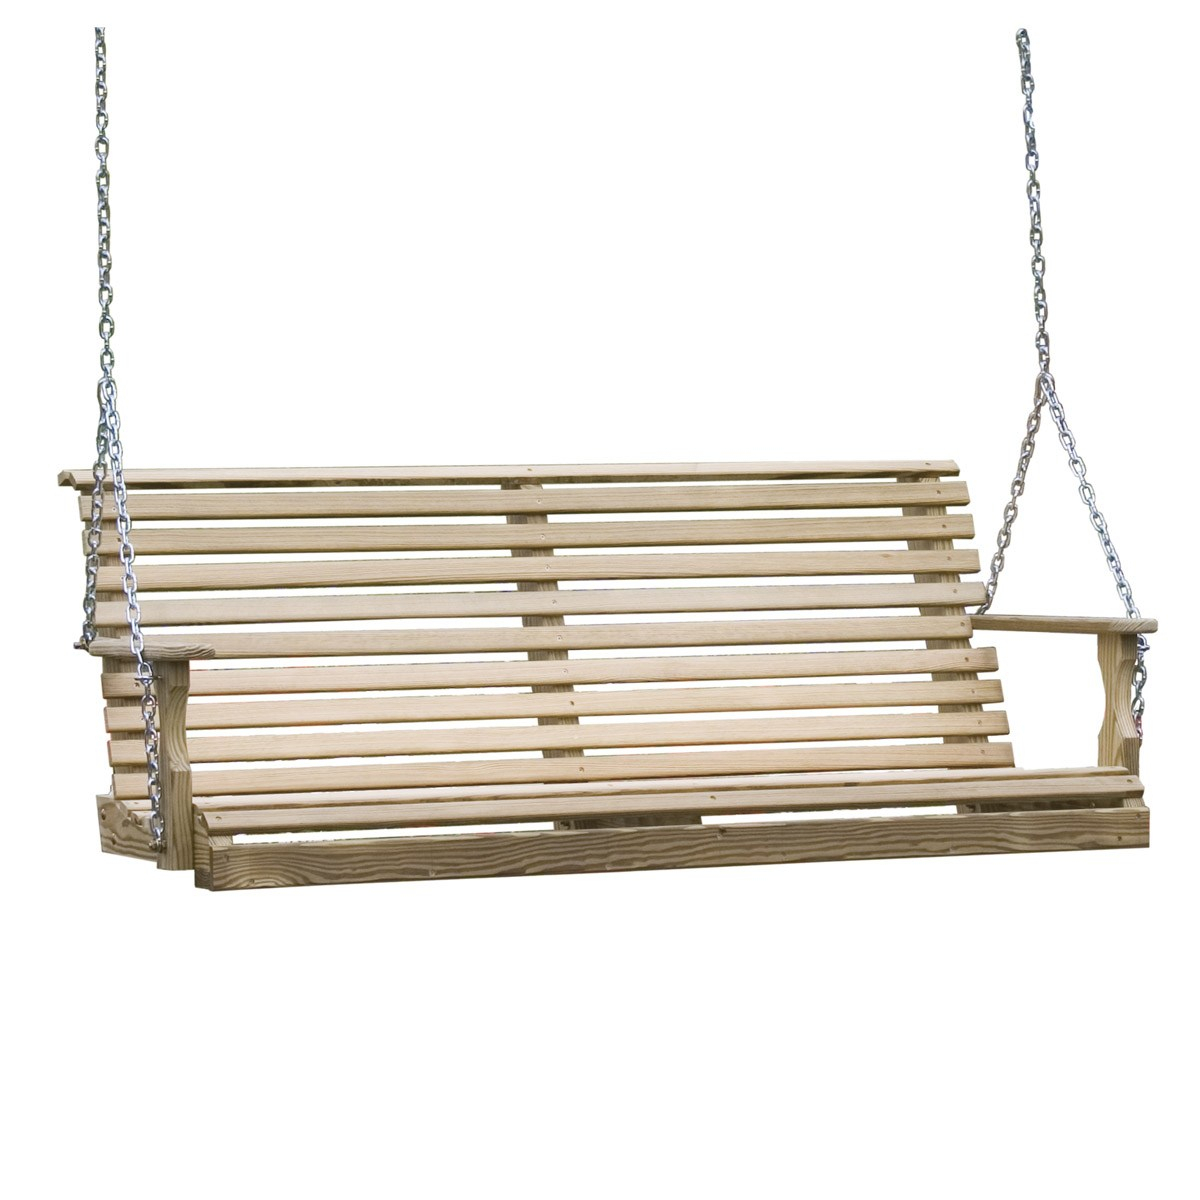 Wooden Lawn Furniture Seating – Pittsburgh Swing Sets And With Plain Porch Swings (View 24 of 25)